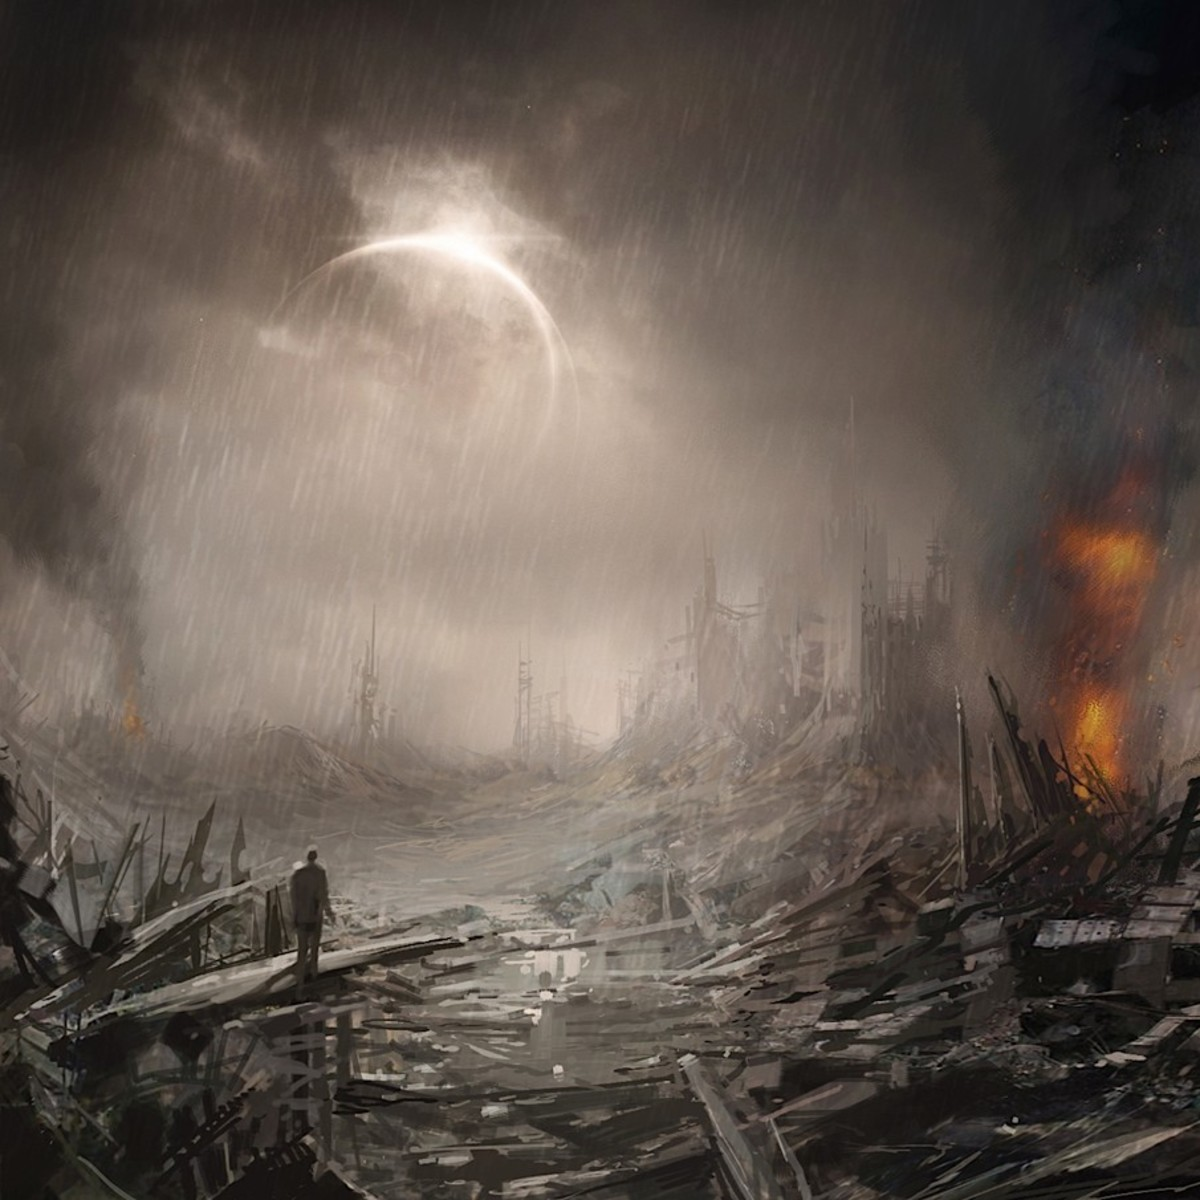 """Hell is seen by many religions to be a place of utter darkness&desolation.In hell,one is cut off from the light of God. It's a place of utter despair & hopelessness.There's a saying when one enters hell,""""Abandon hope all ye who enters here."""""""